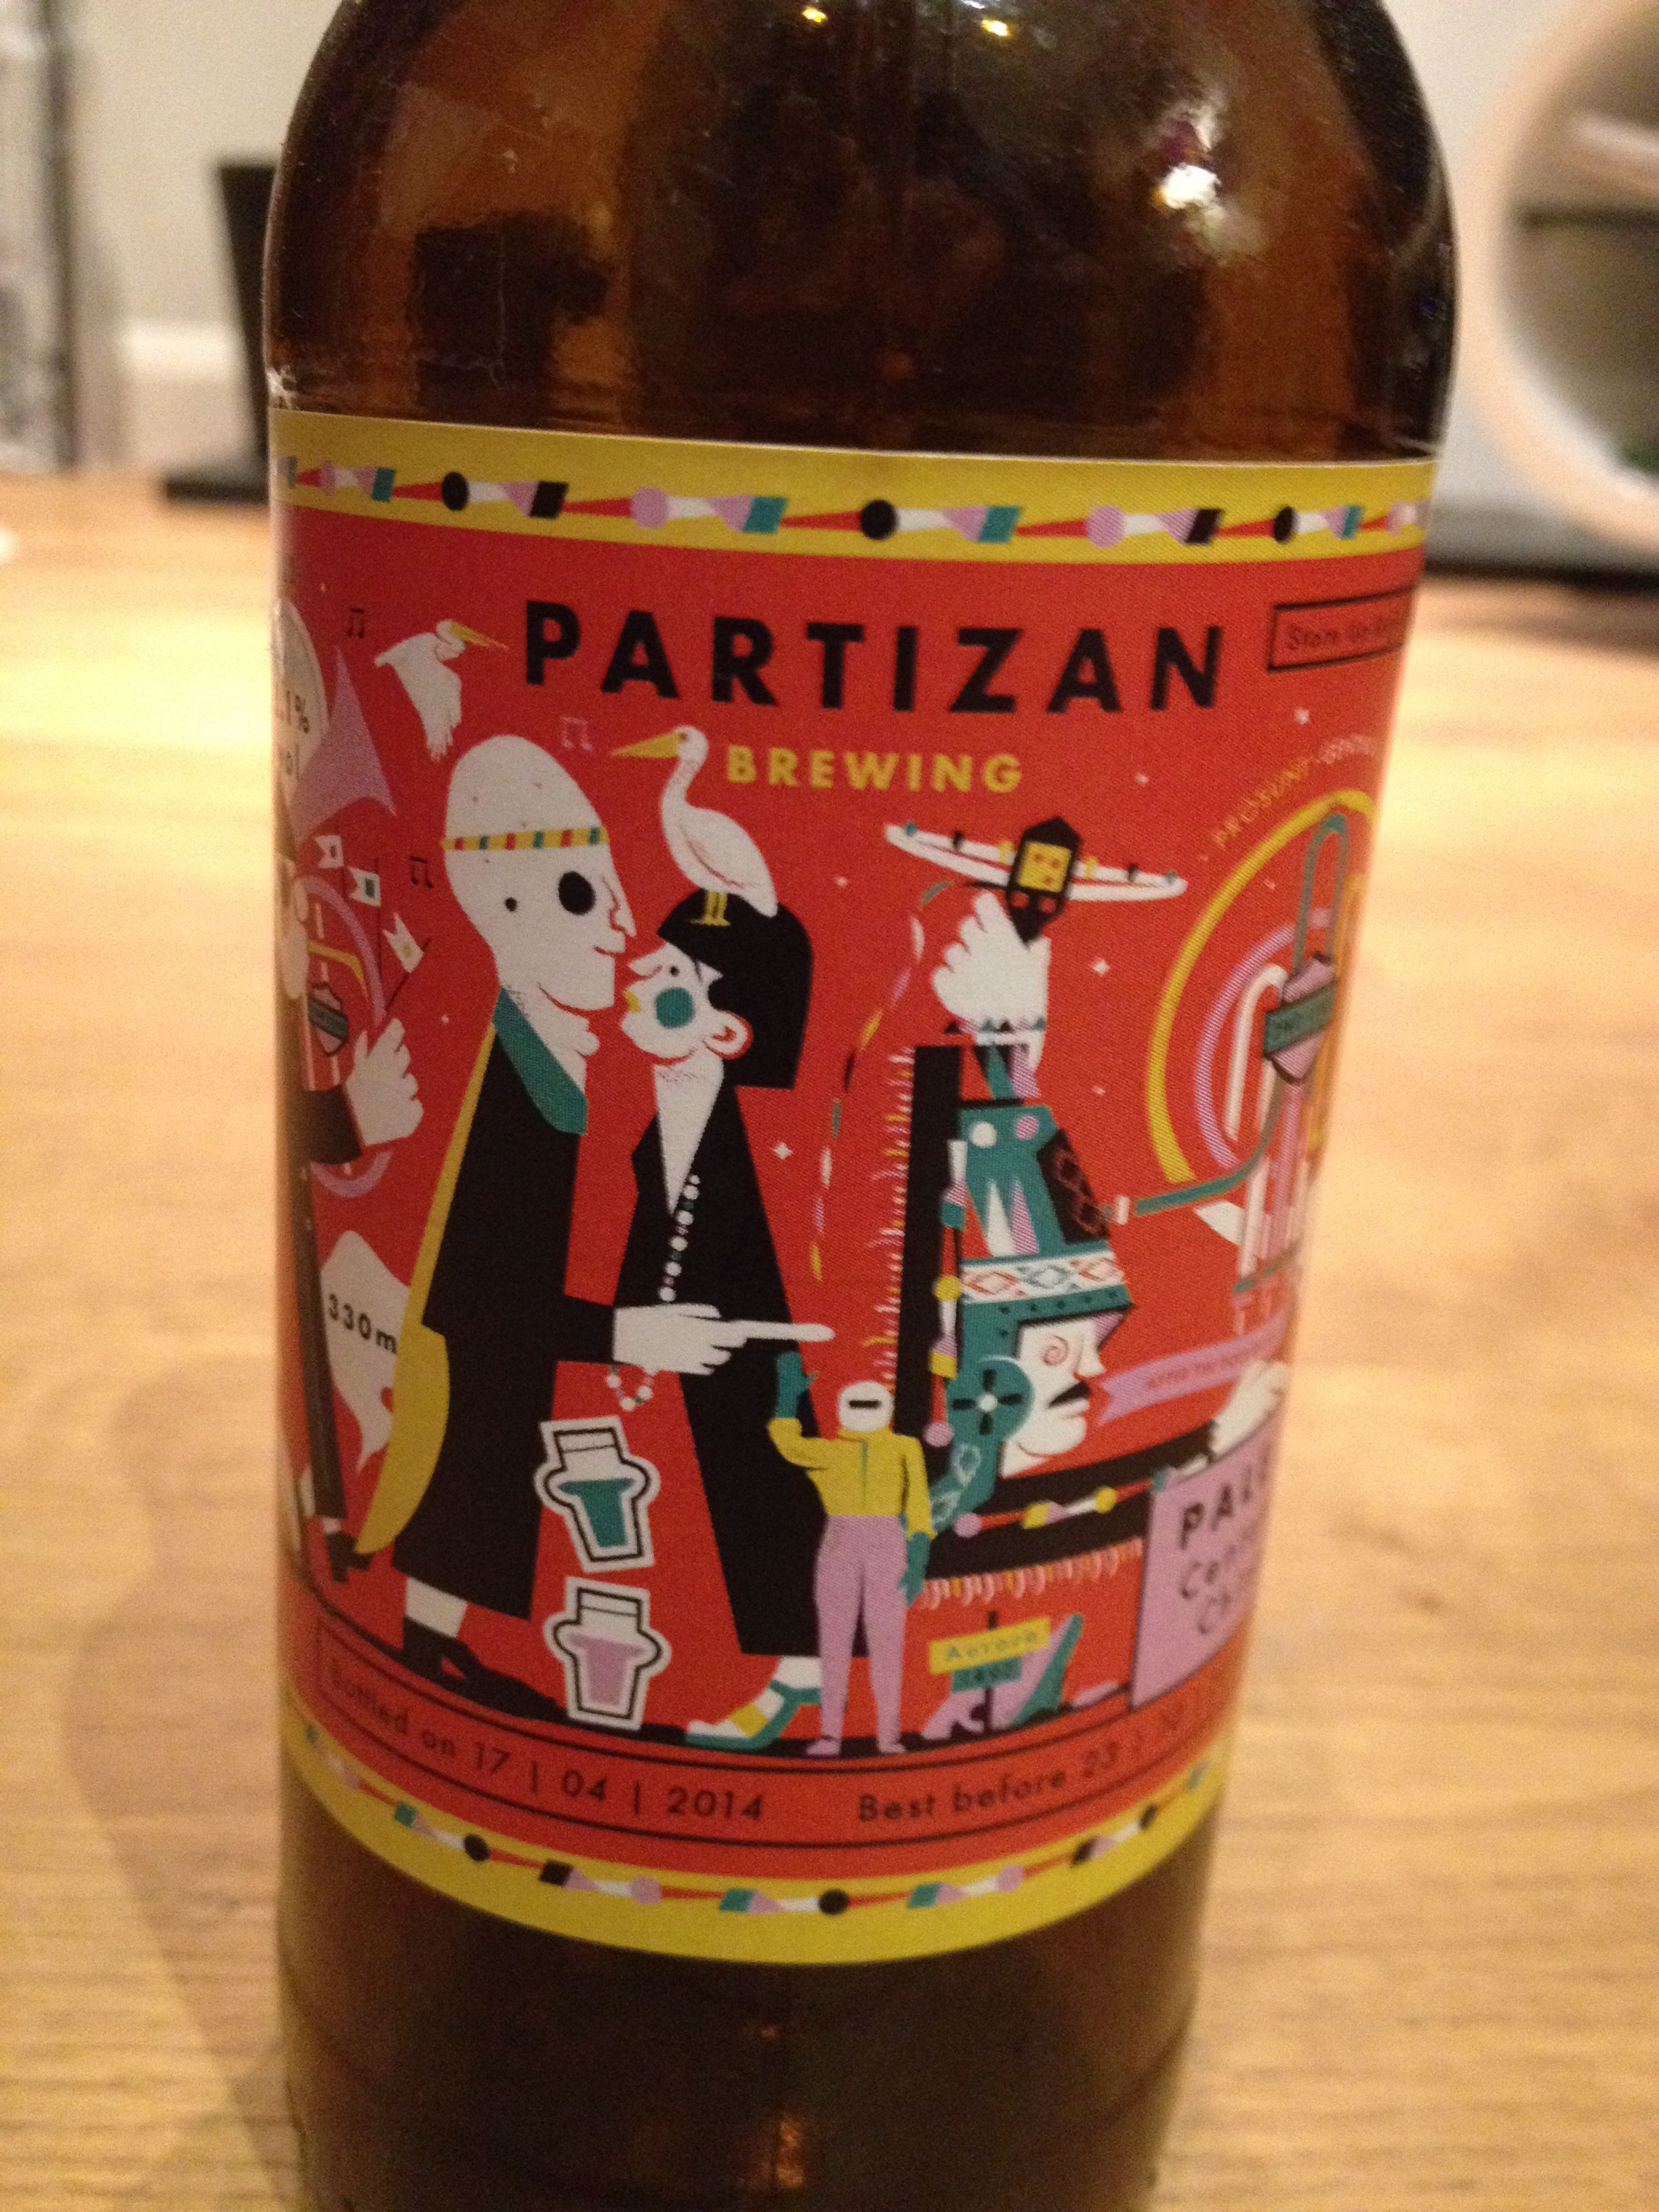 Partizan Brewing Peter Pale And Mary 5 1 South Bermondsey London Provided By Beerbods Beer Brewing Beer Bottle